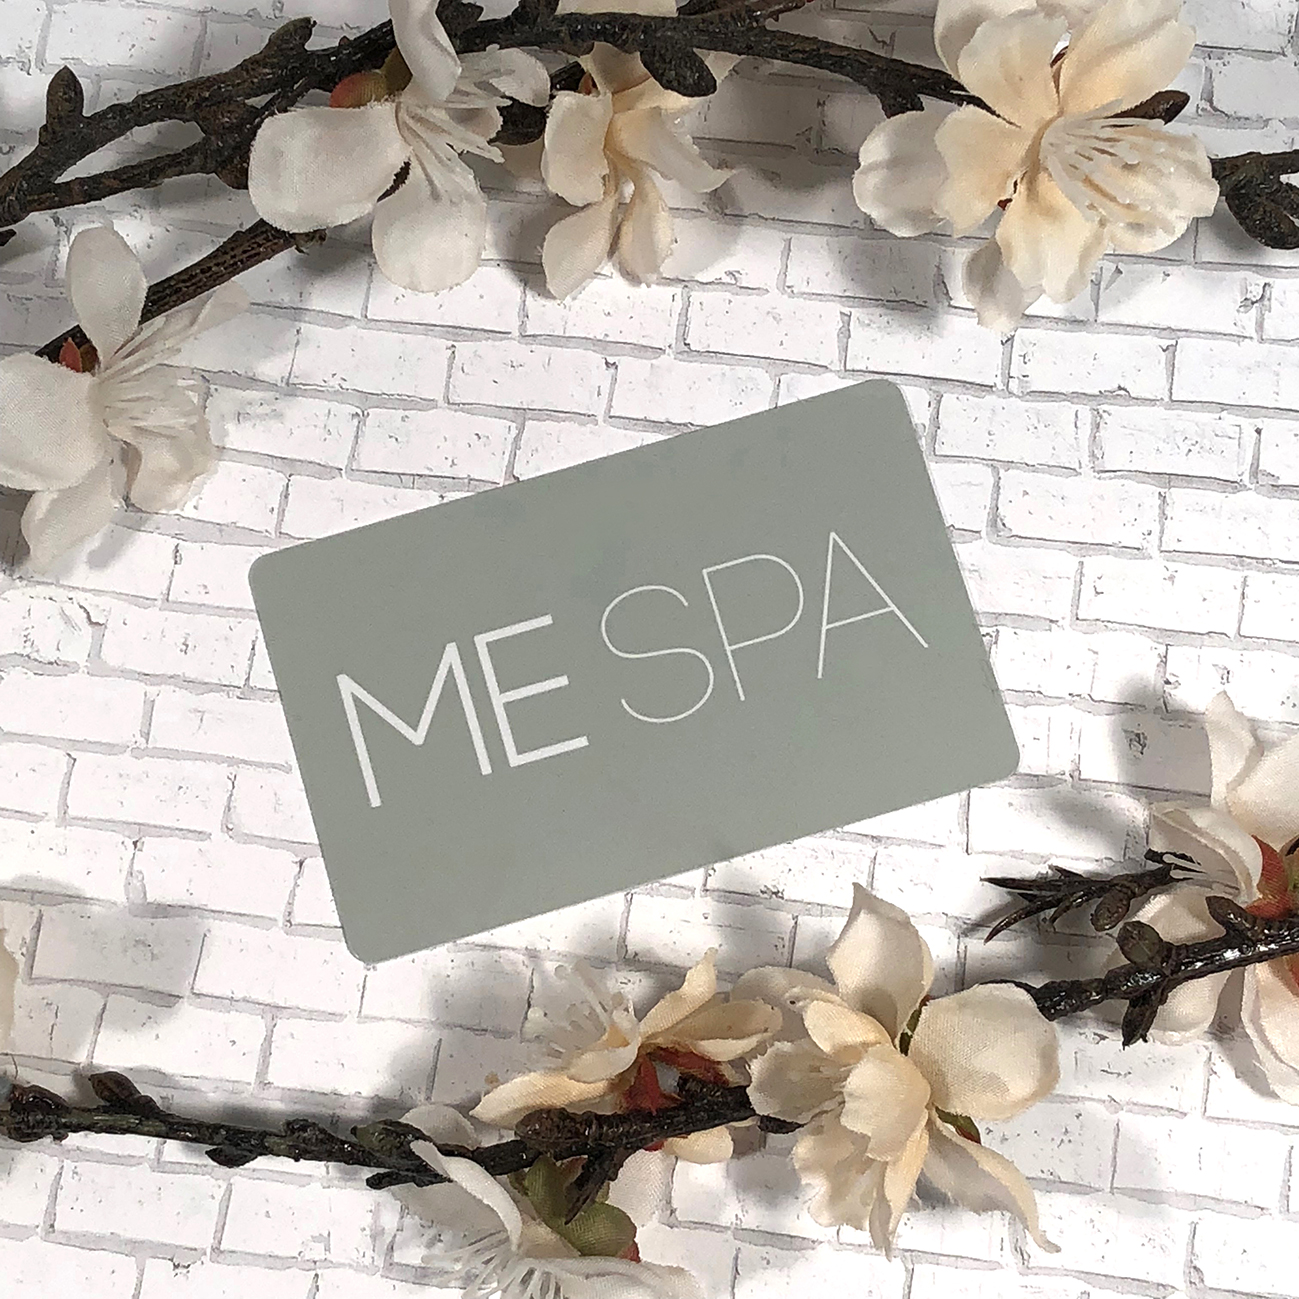 win a $50 ME SPA gift card - Enter our monthly giveaway for a chance to win a $50 ME SPA Gift Card!